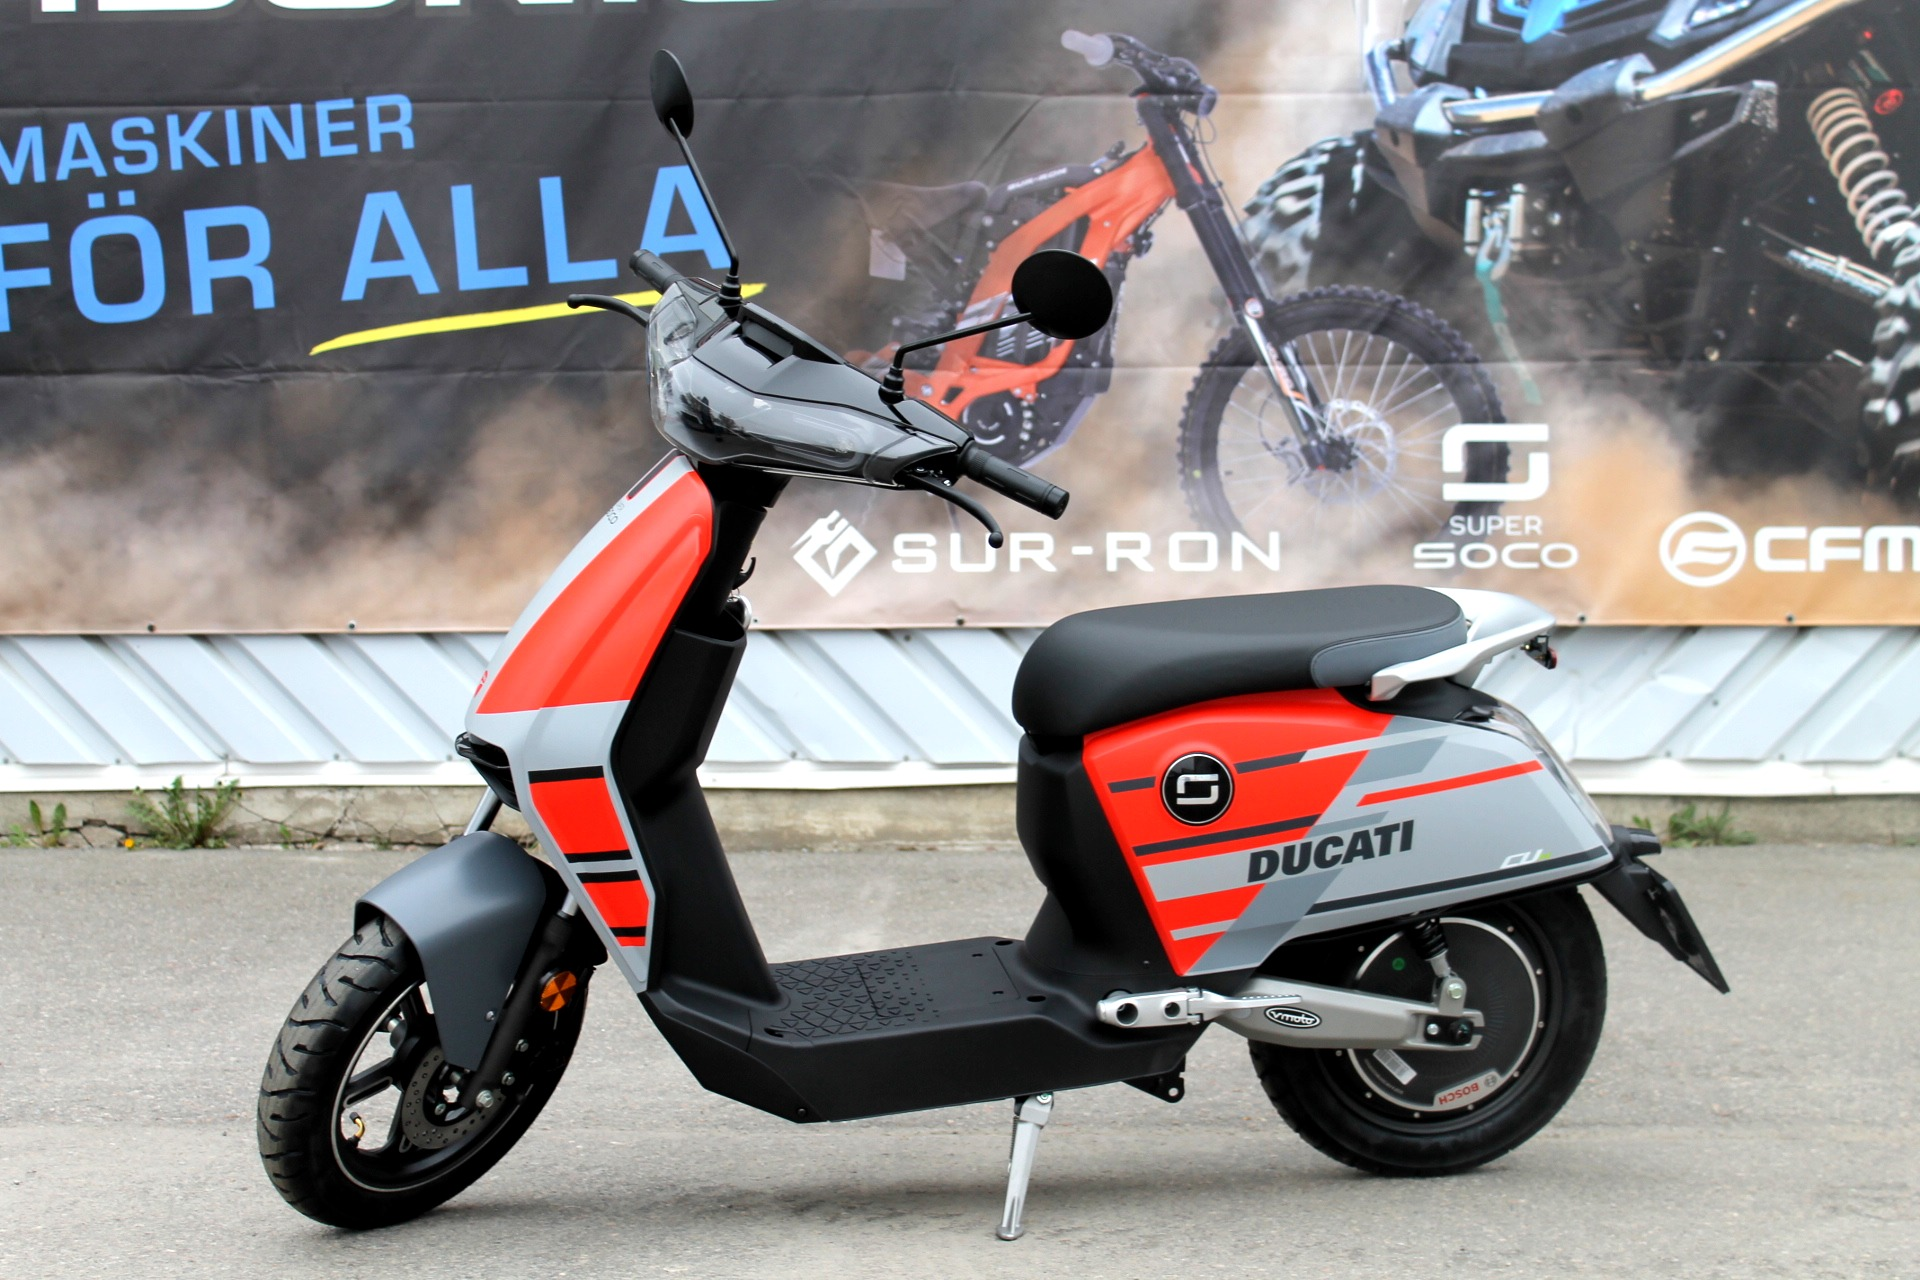 El Moped Super Soco CUx Ducati EDT